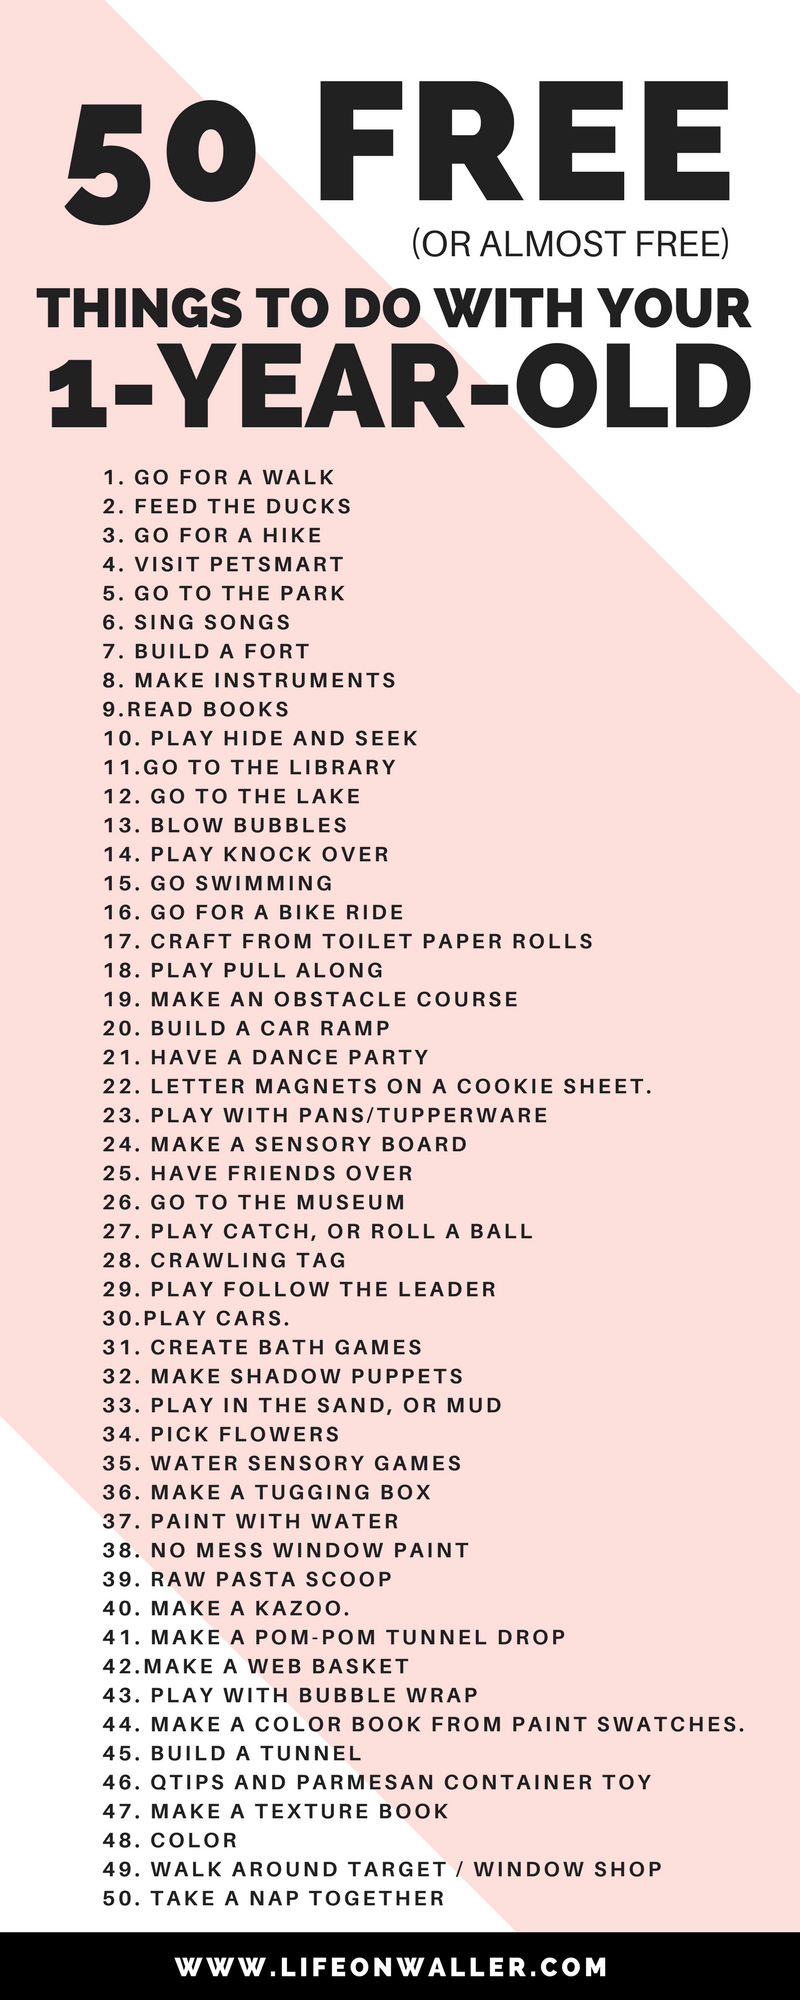 50 free things to do with your 1 year old life on waller for How to make new things from old things